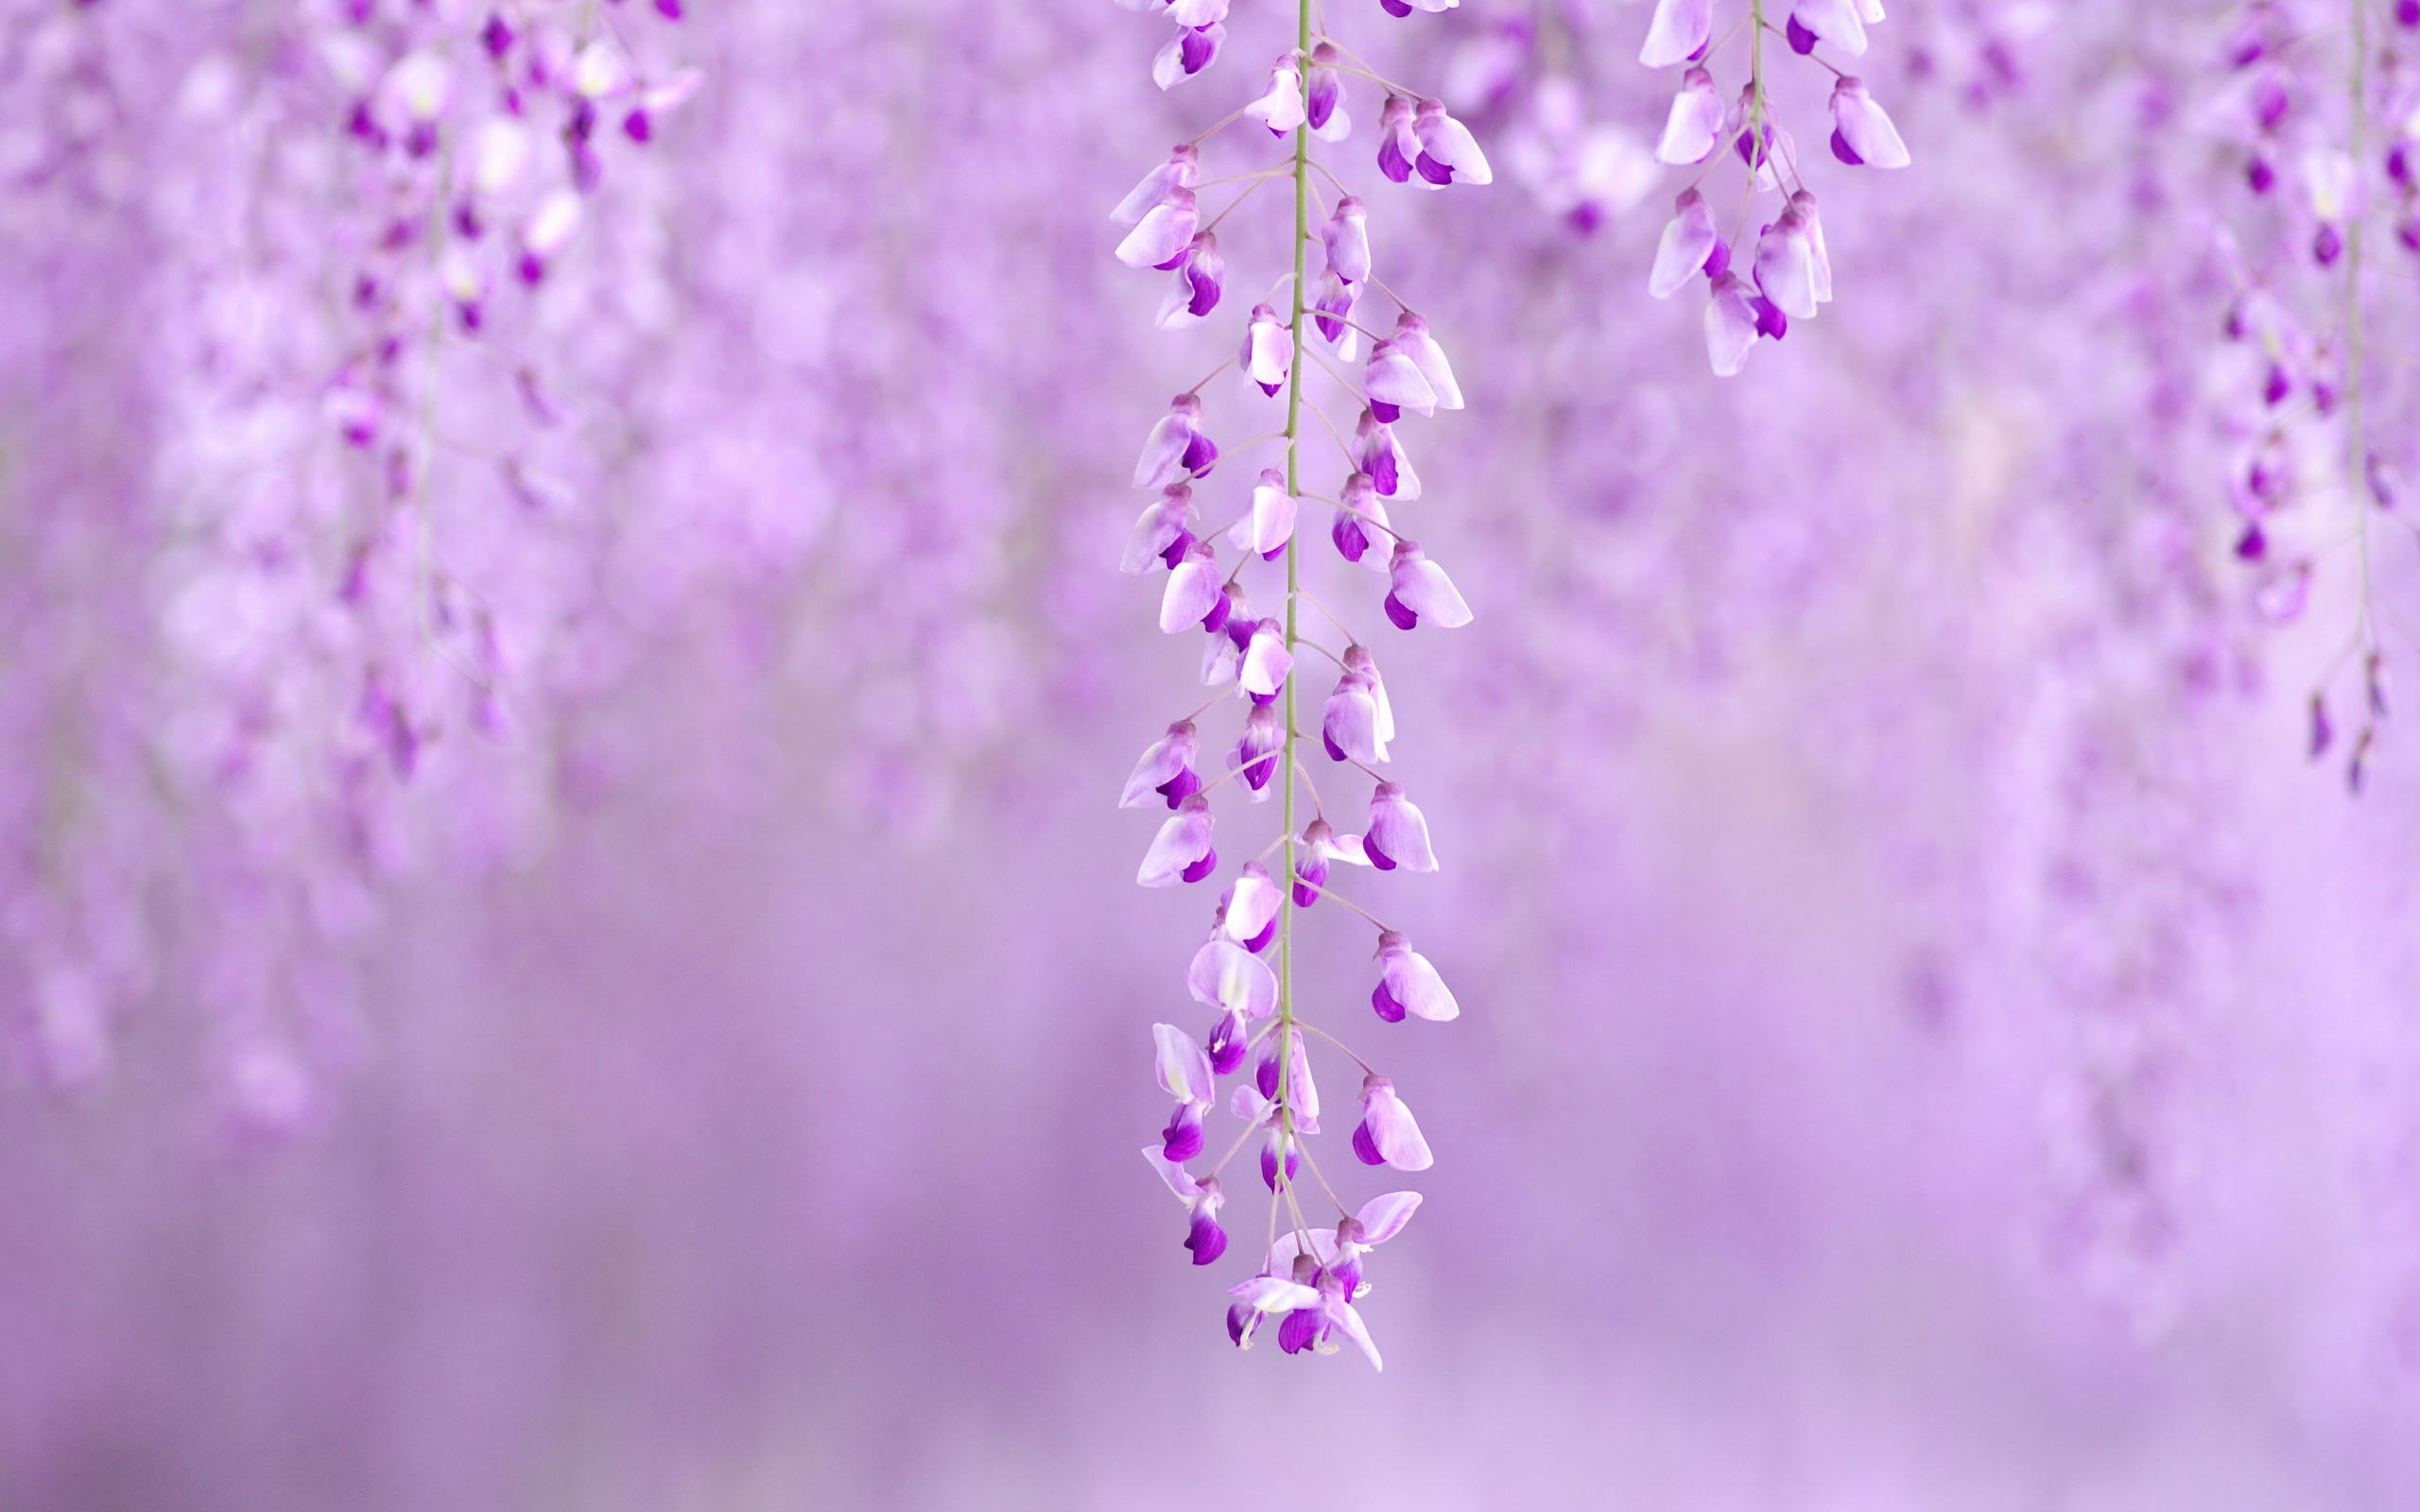 Res: 2560x1600, Spring Flowers Background. Wallpaper: Spring Flowers Background